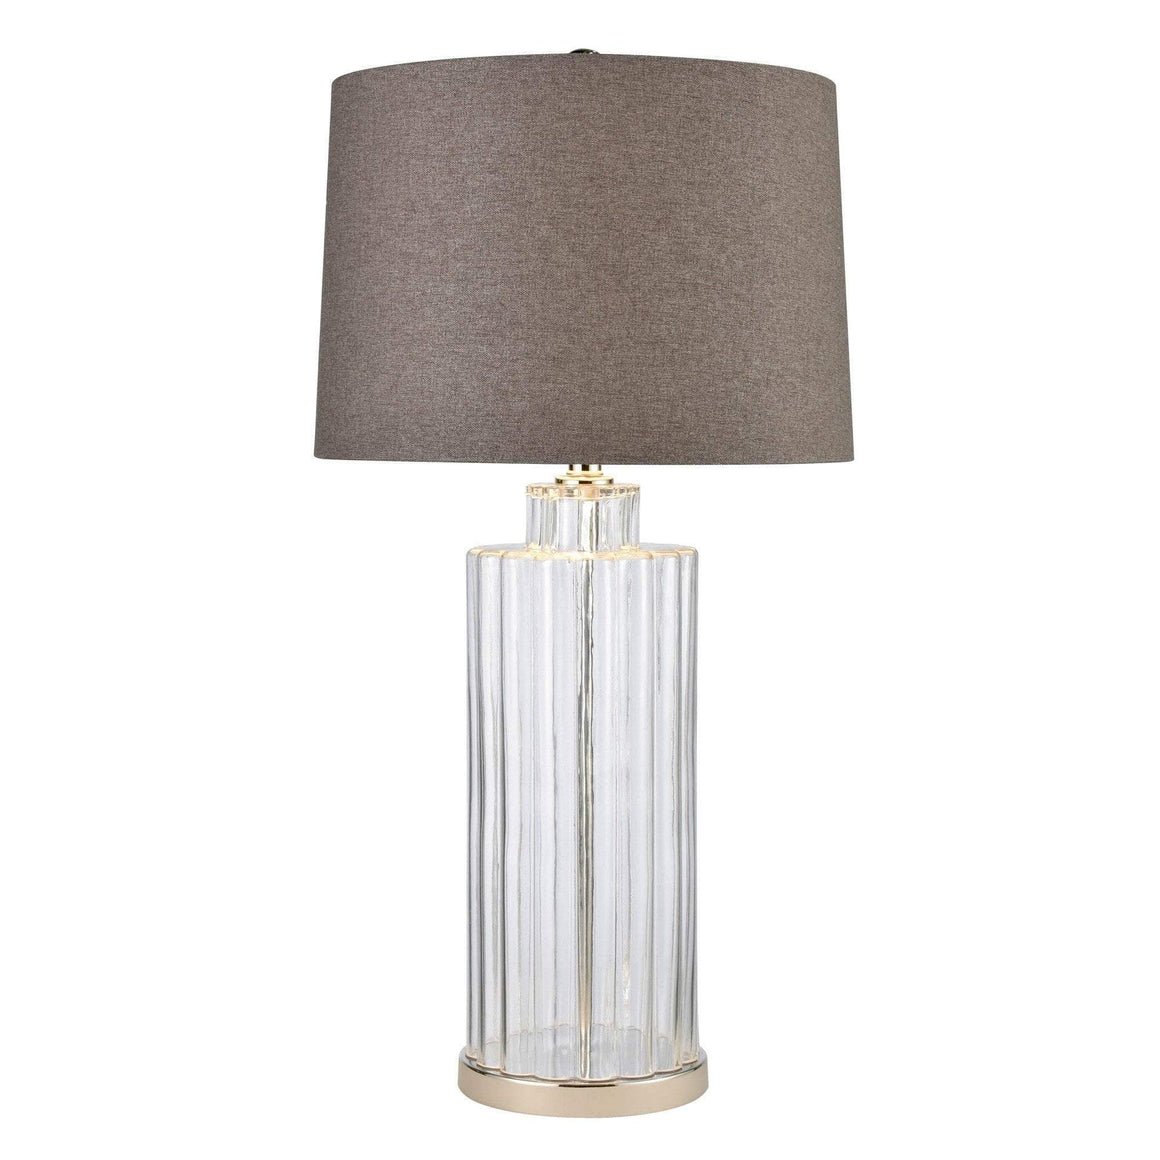 JAMISON GLASS TABLE LAMP W/ BEIGE SHADE